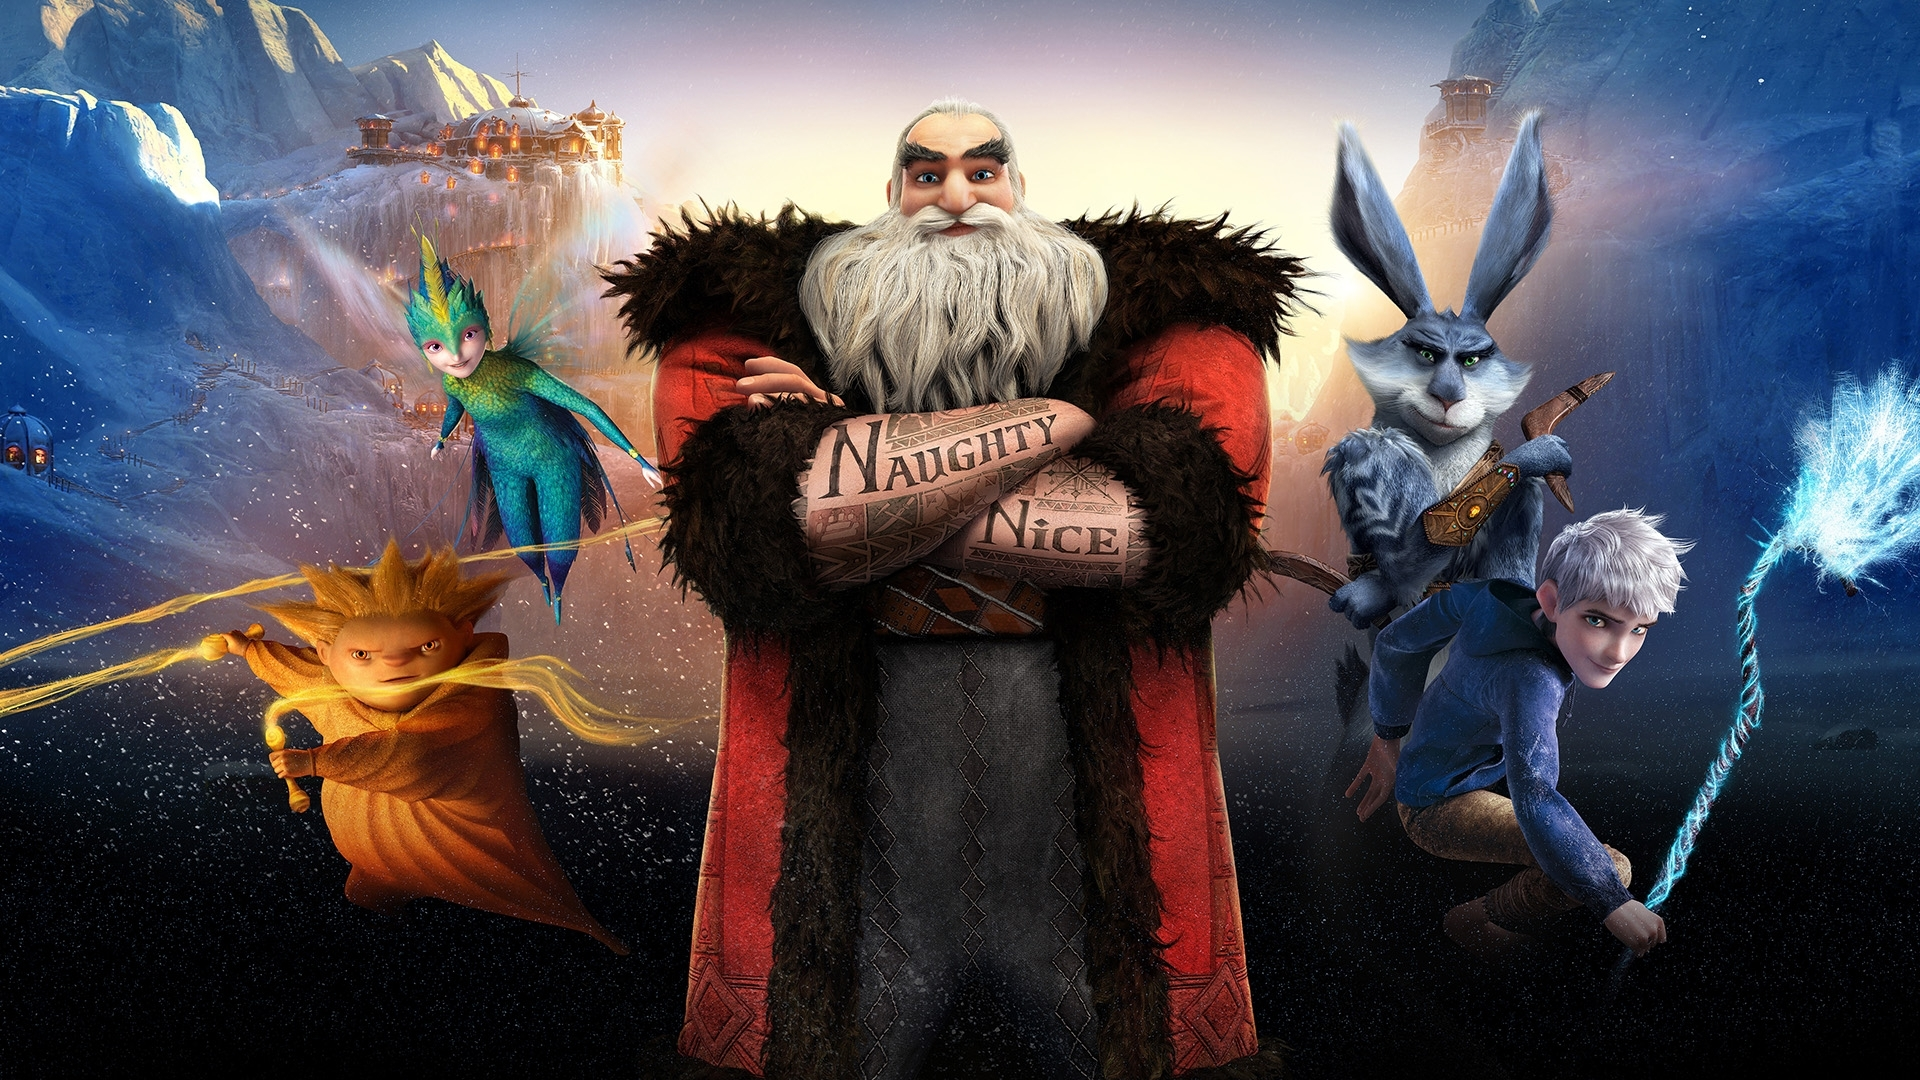 rise of the guardians wallpapers group (83+)